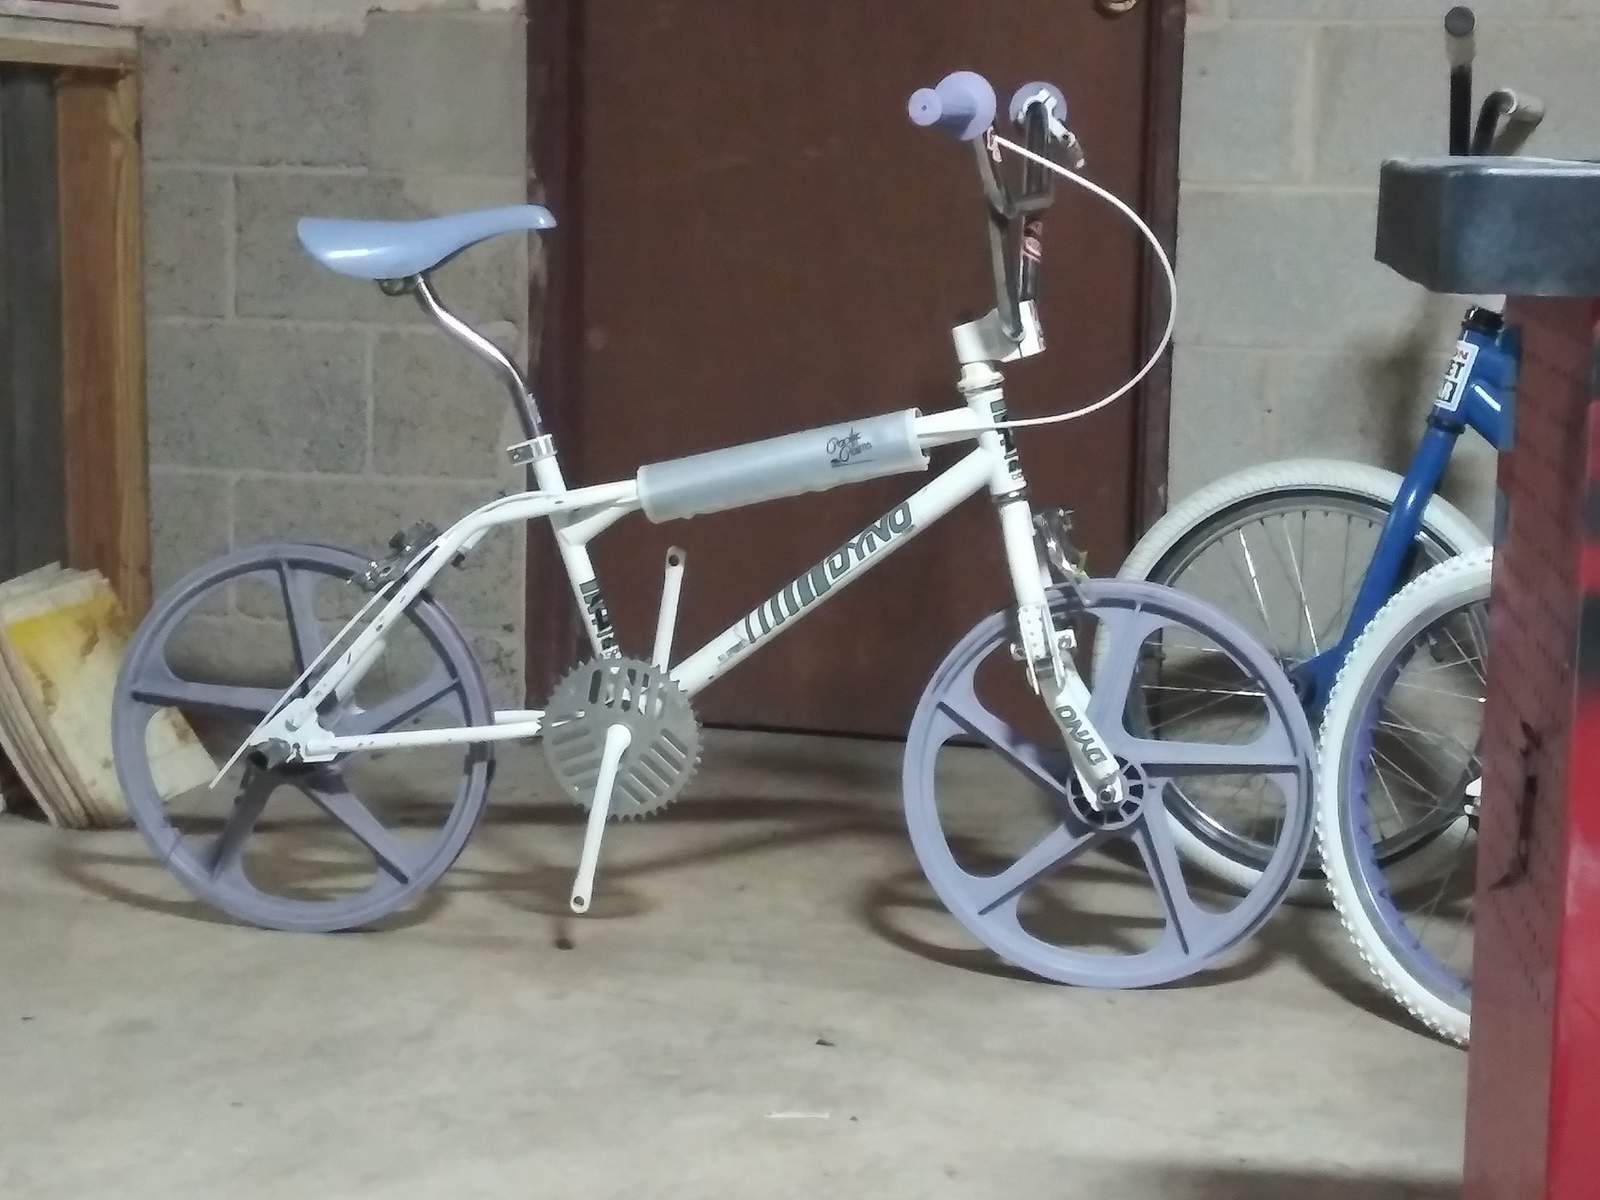 https://s3.amazonaws.com/uploads.bmxmuseum.com/user-images/219557/20191213_1711295e0ba98c24.jpg